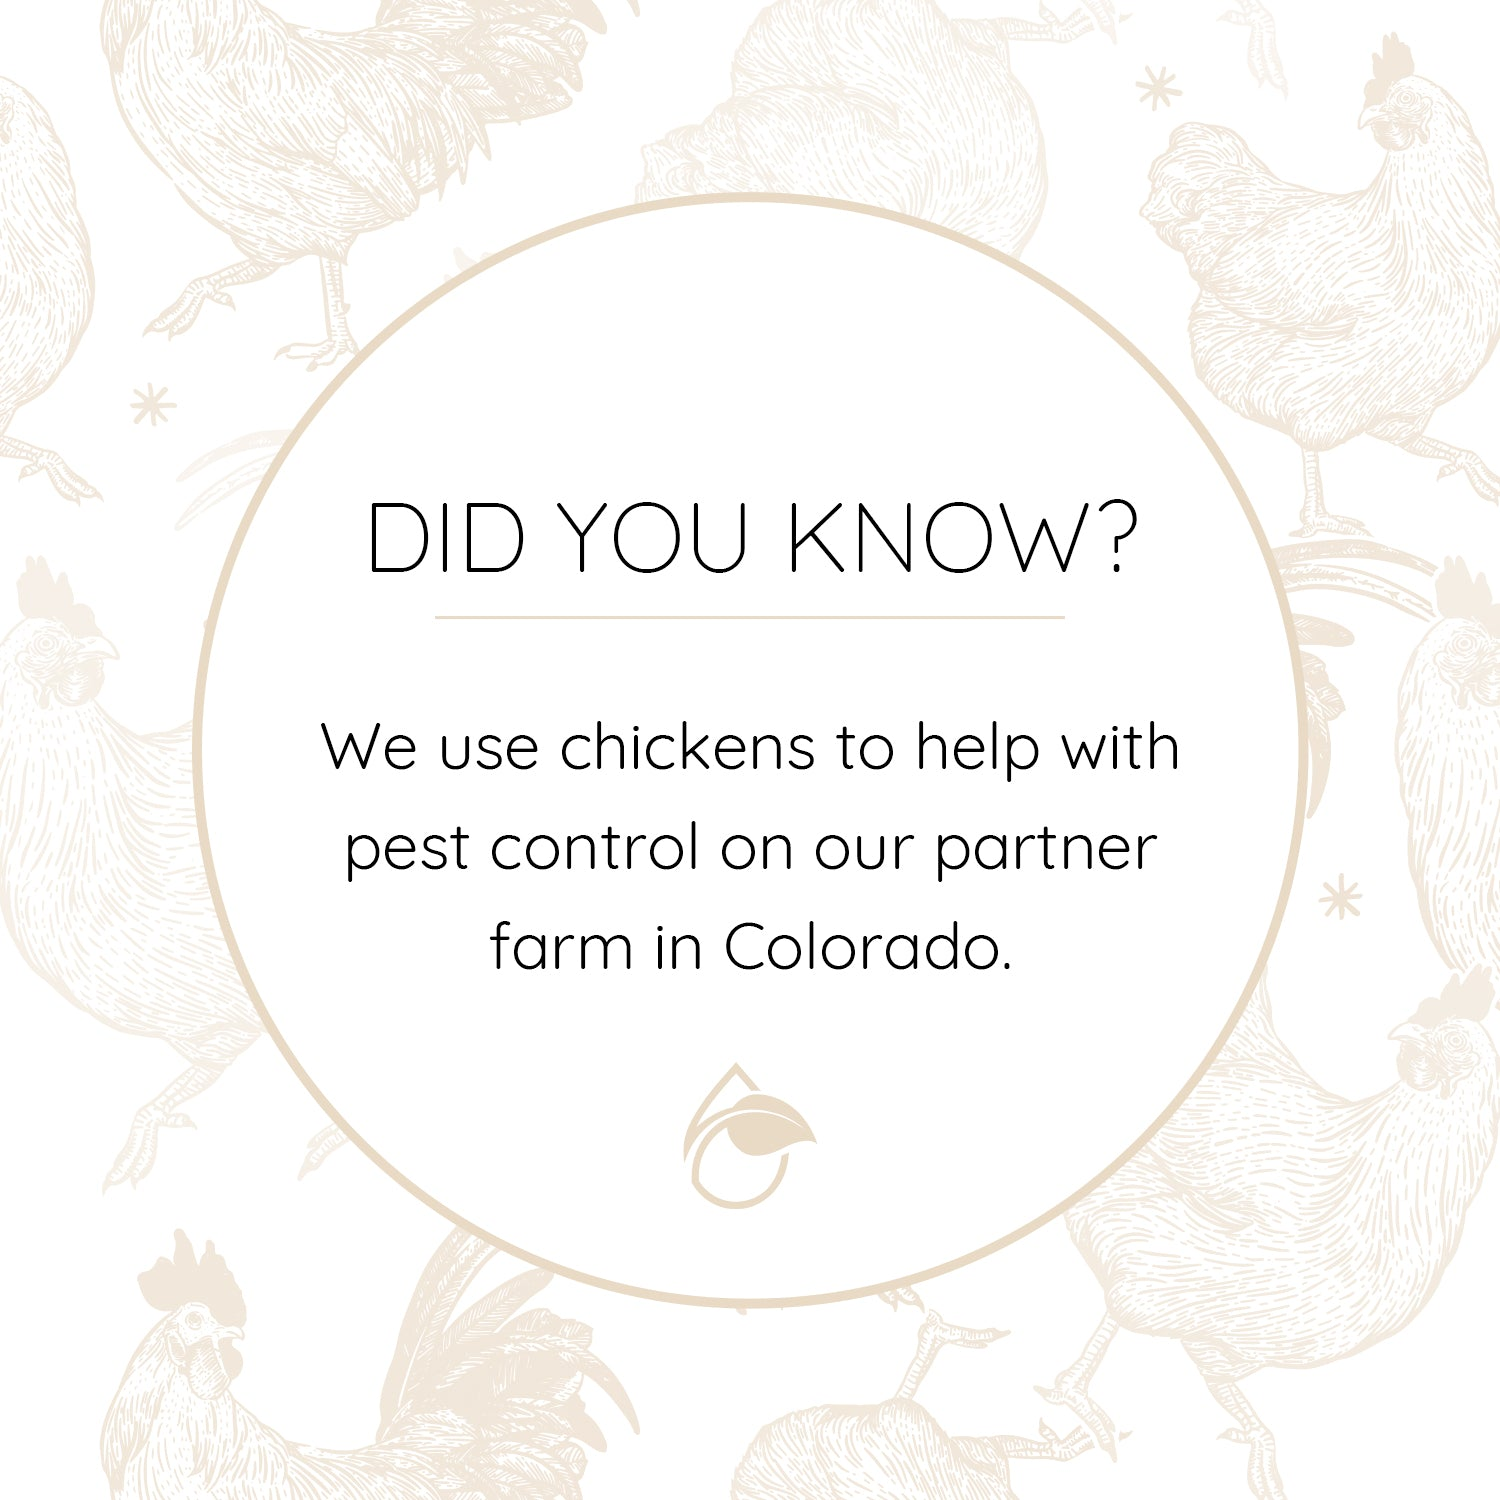 DYK - Chickens Help With Pests